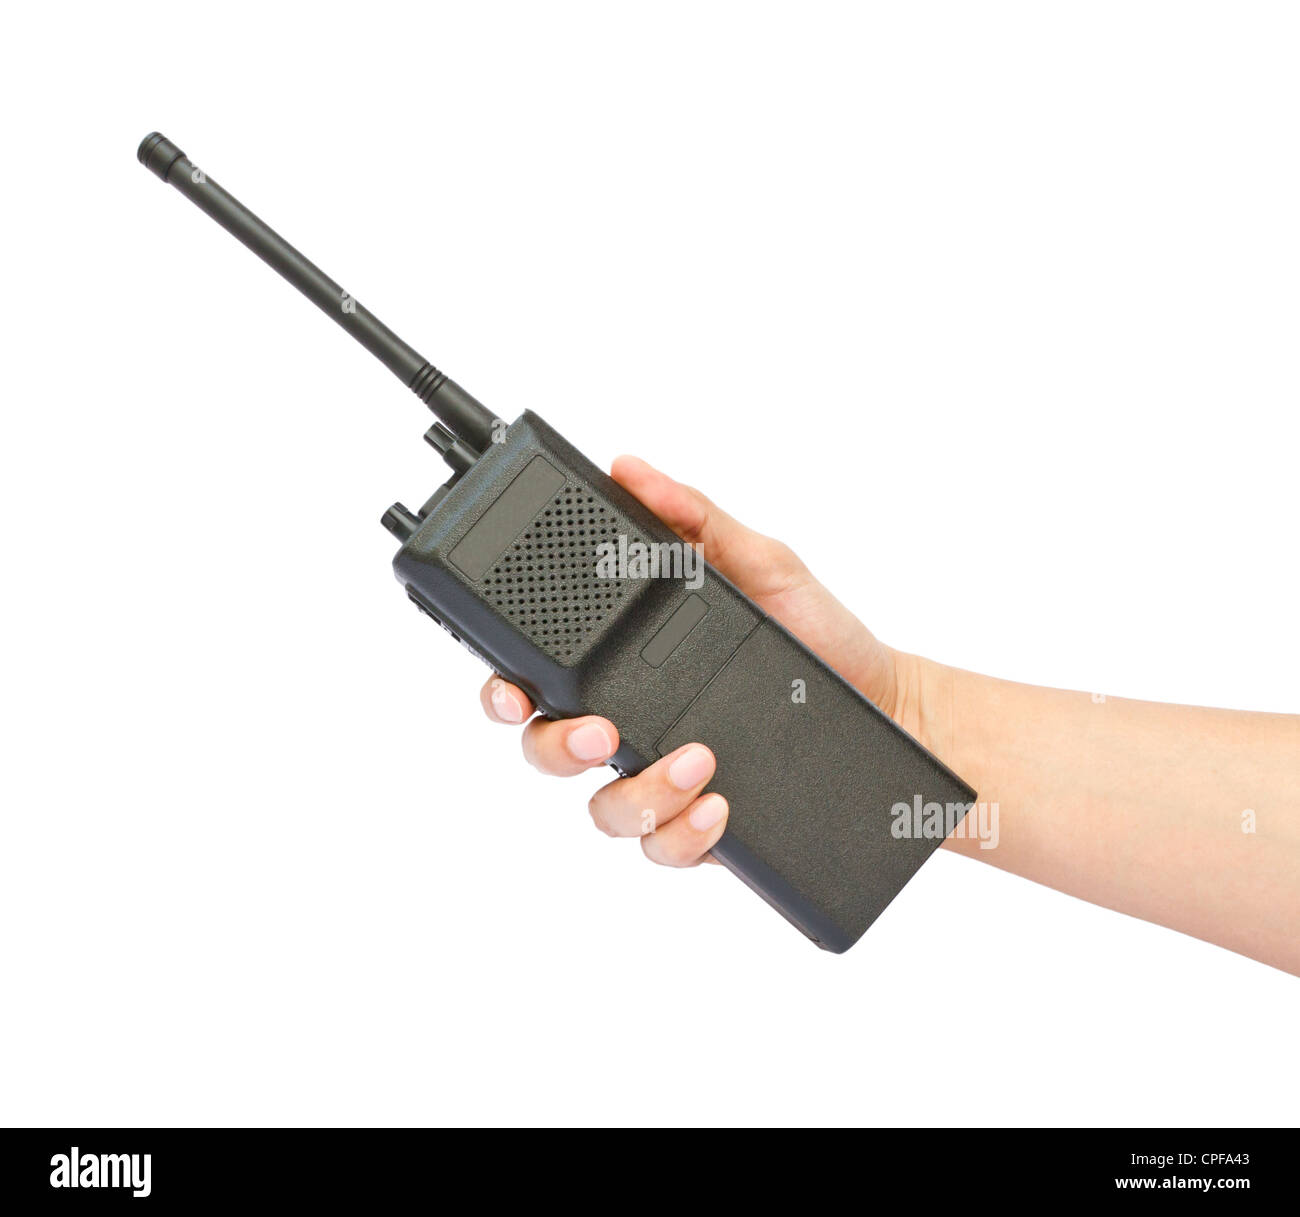 Hand holding walkie-talkie on white background - Stock Image